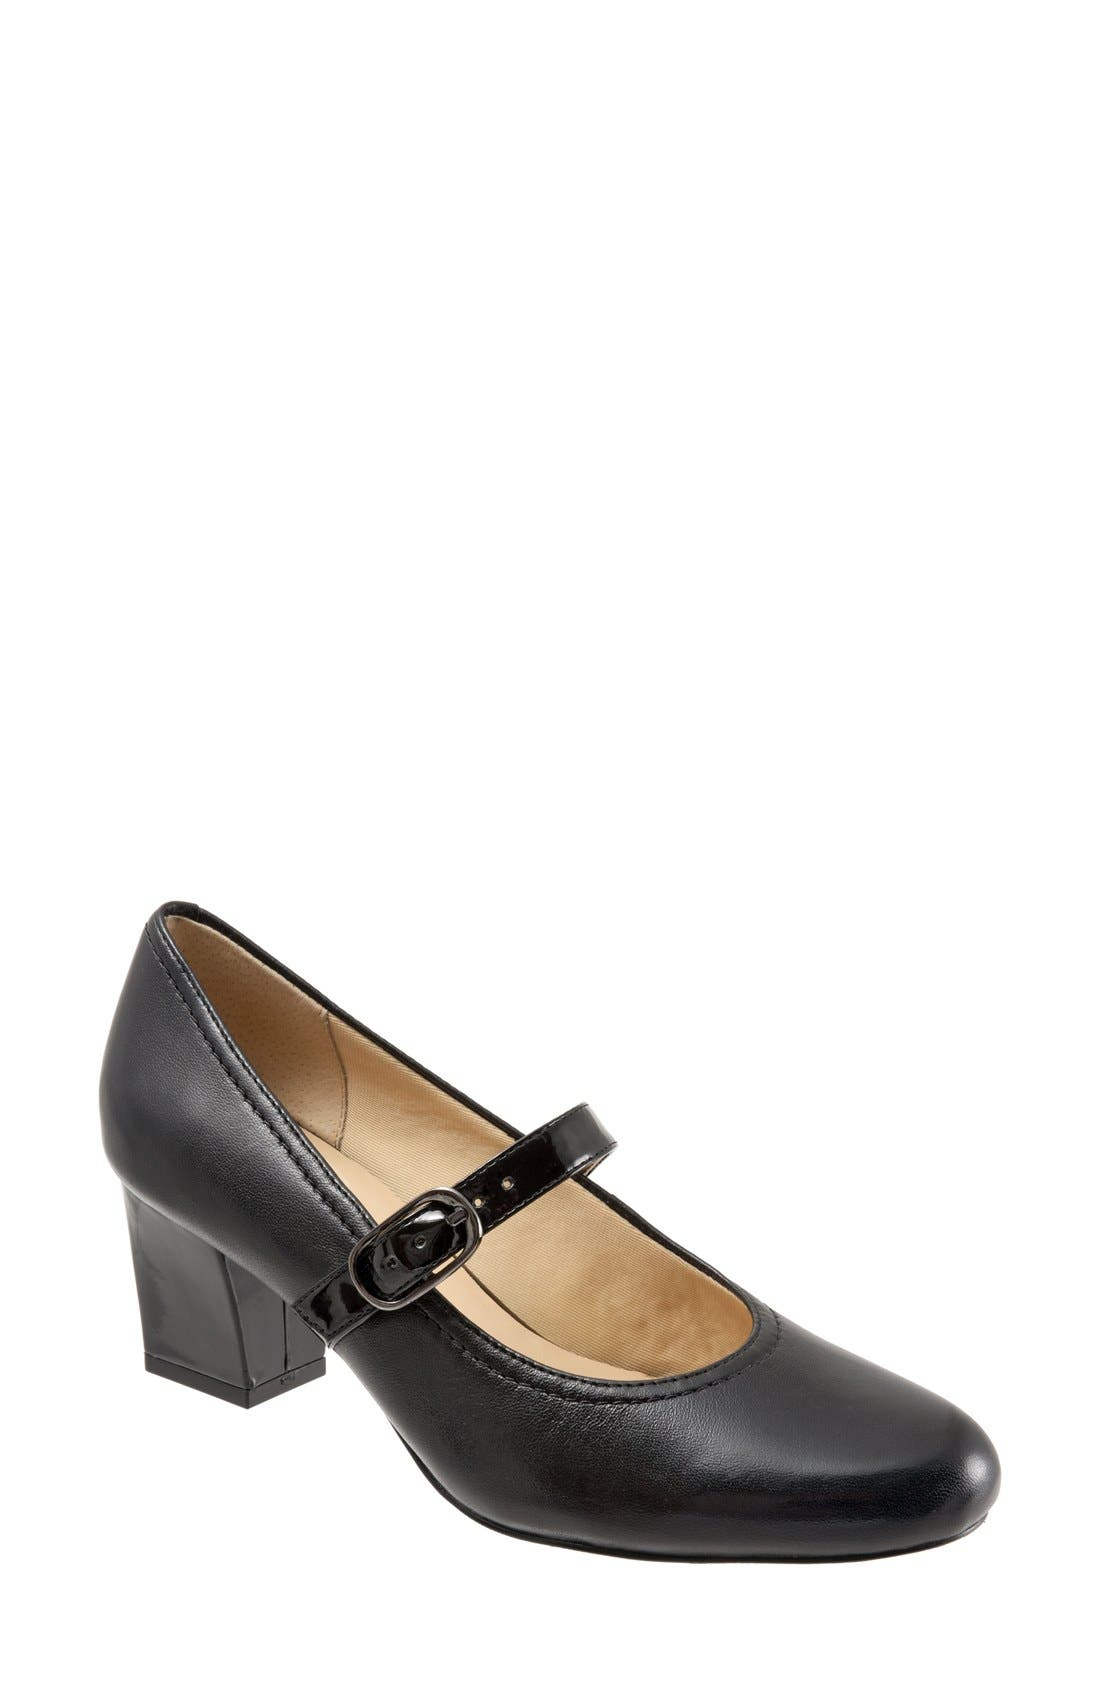 'Candice' Mary Jane Pump,                             Main thumbnail 1, color,                             BLACK LEATHER